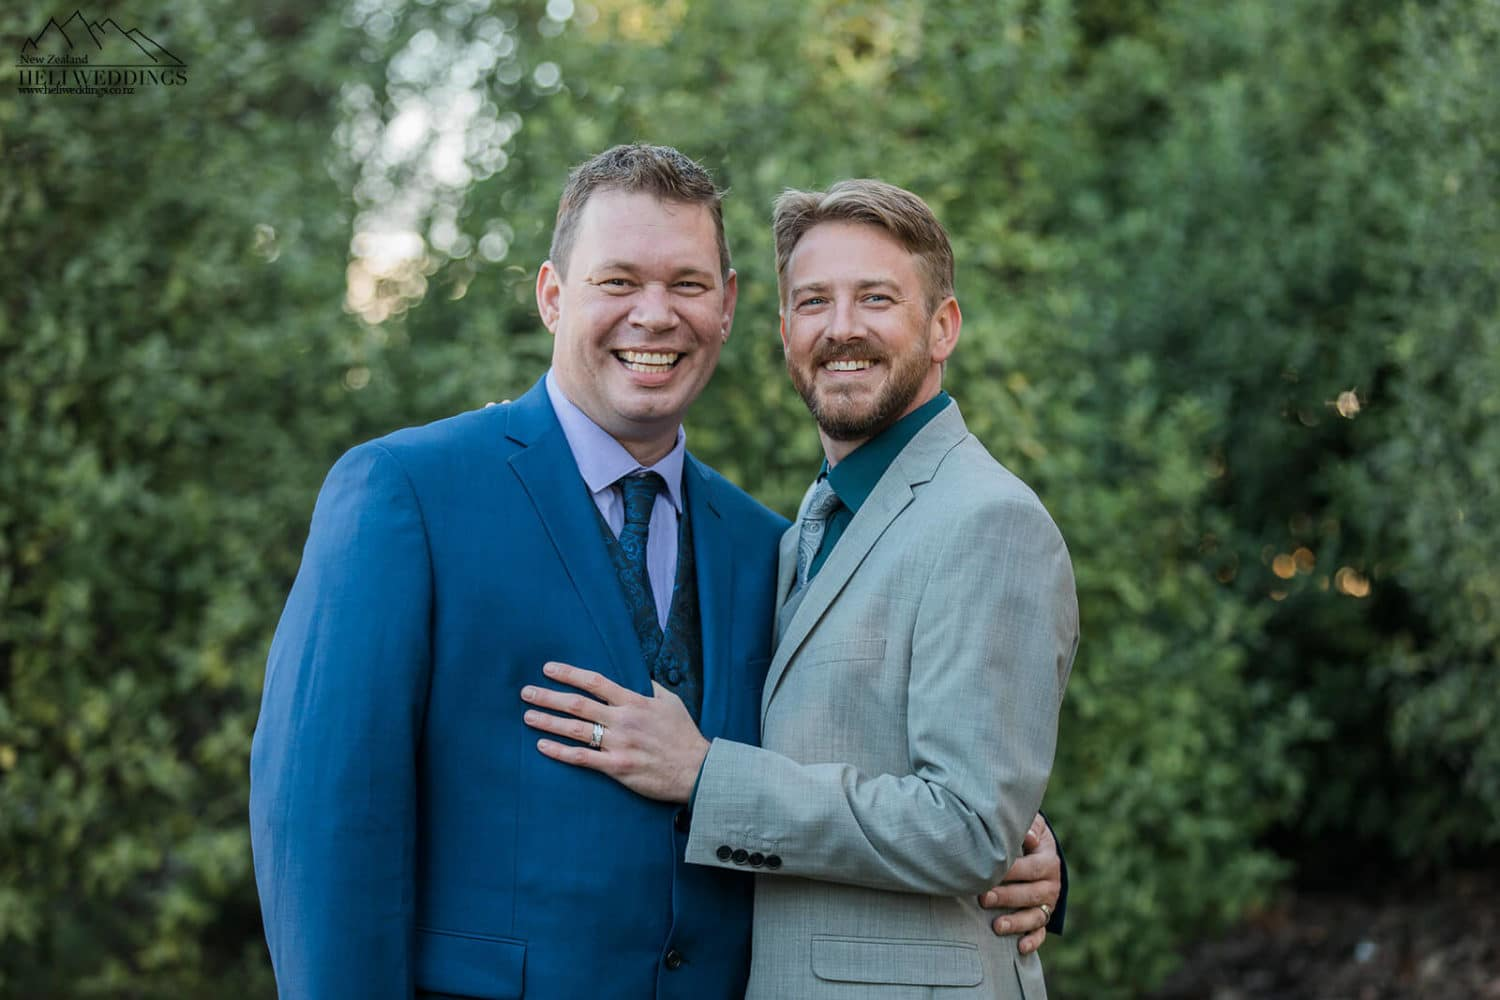 Queenstown same sex wedding , samesex destination wedding